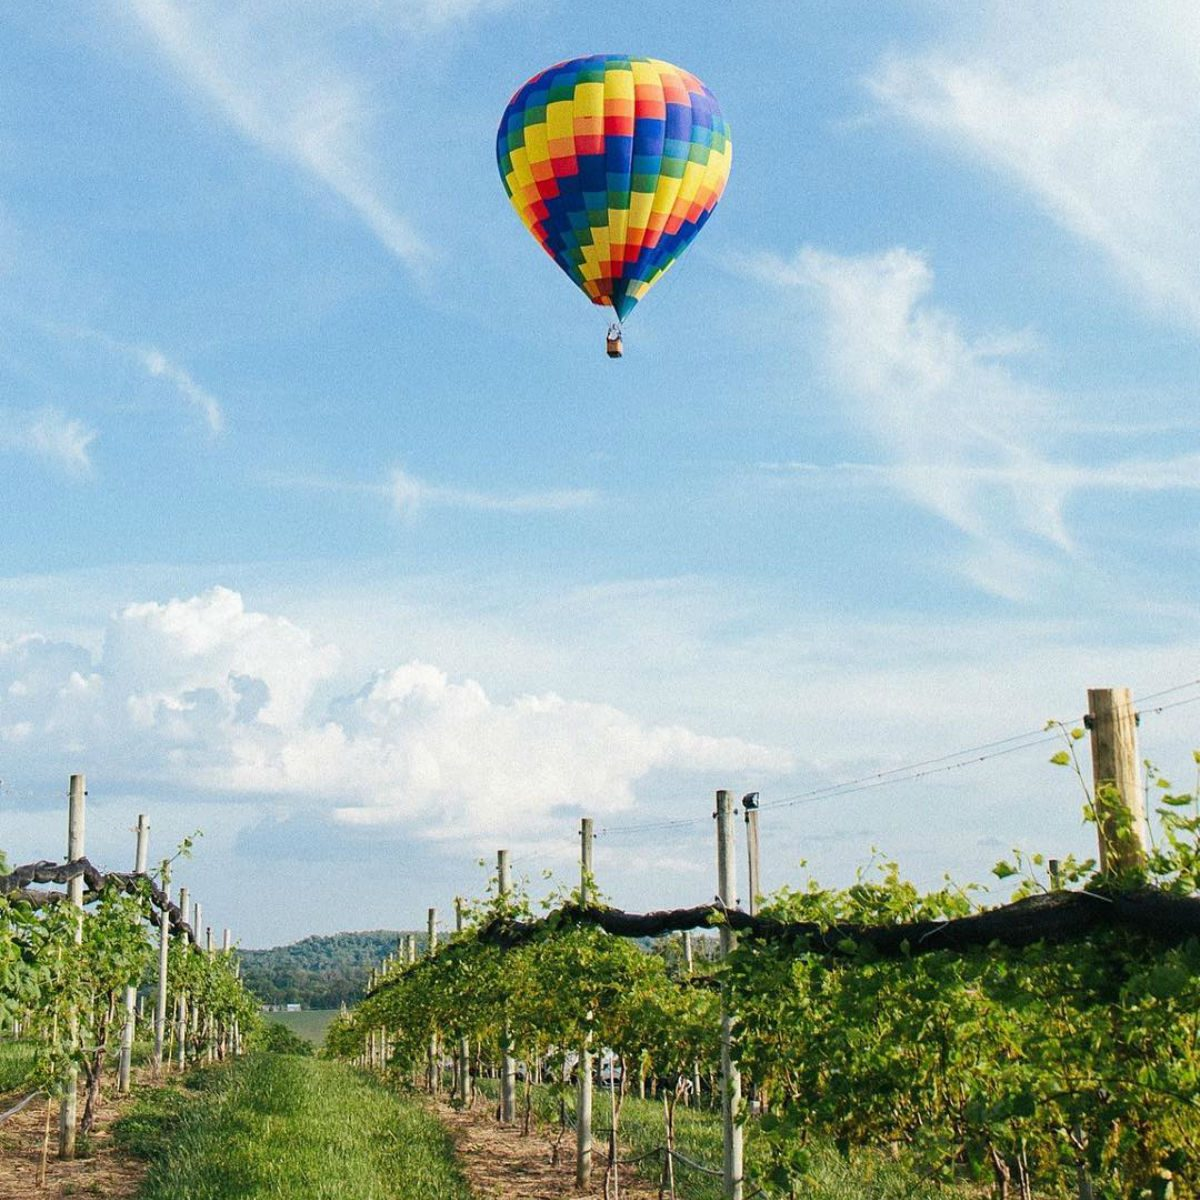 Soaring Wings Vineyard with a hot balloon flying overhead